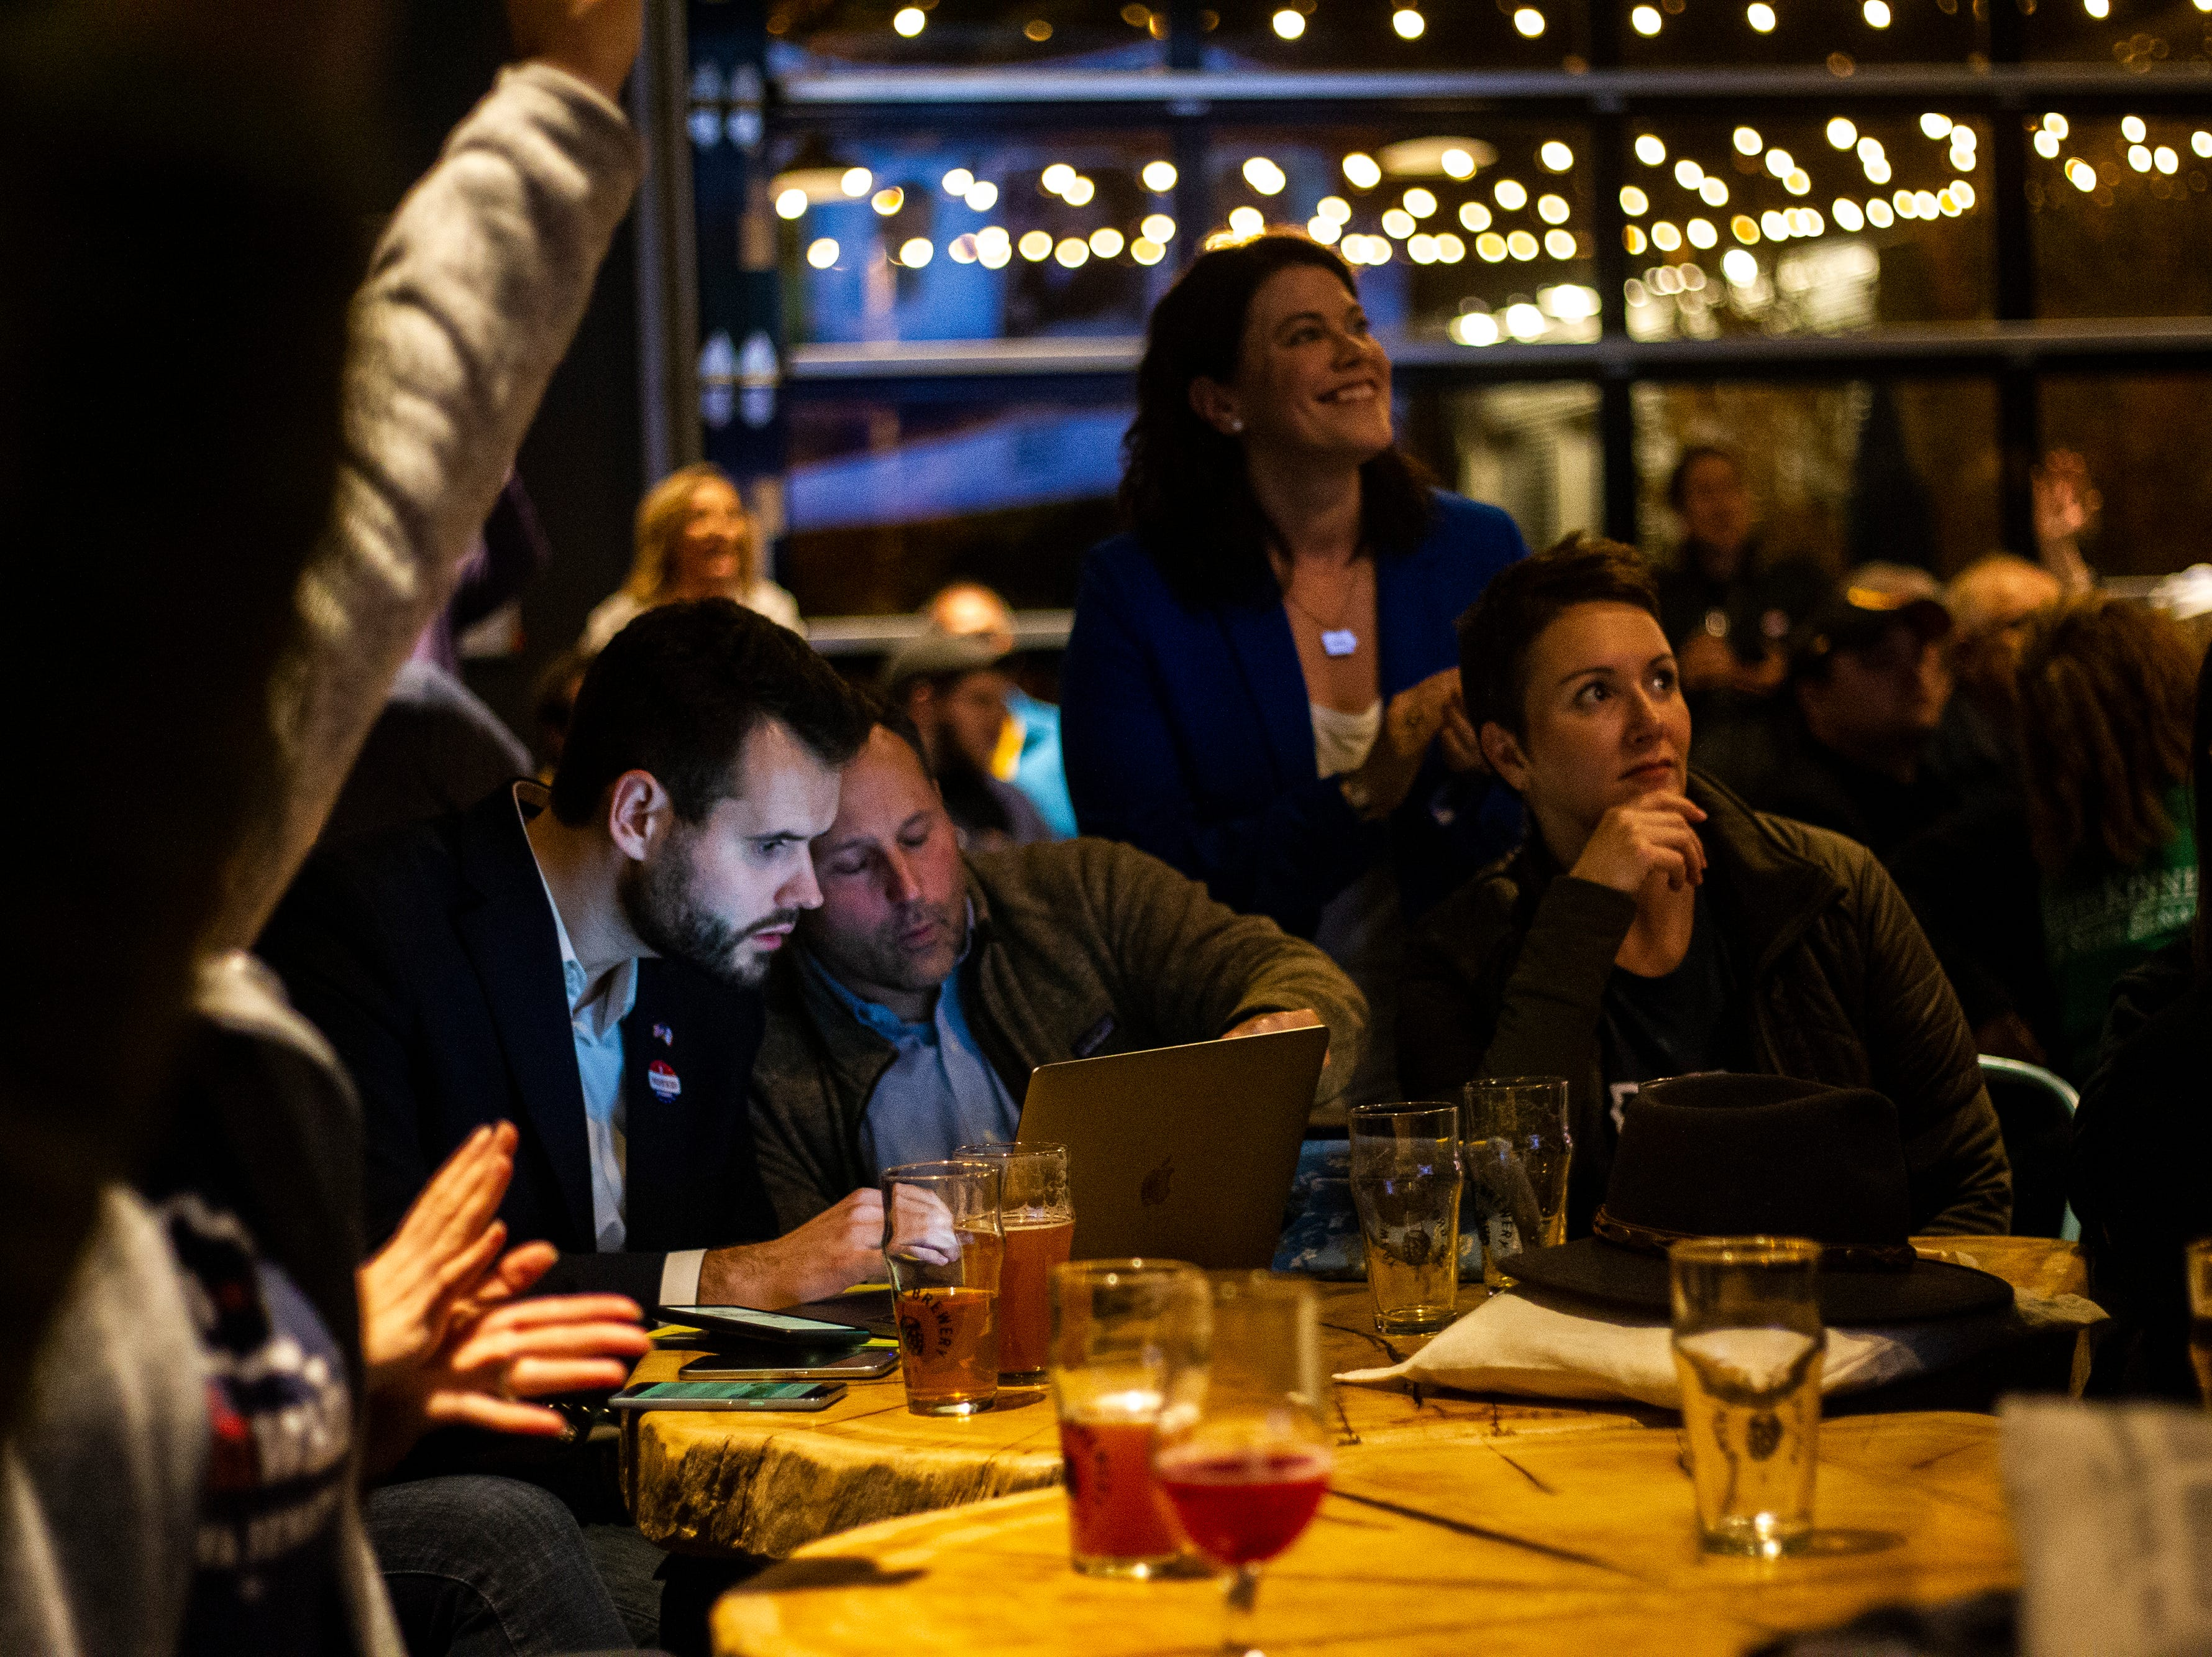 Zach Wahls checks results on his computer during the Johnson County Democrats watch party on Tuesday, Nov. 6, 2018, at Big Grove Brewery in Iowa City.